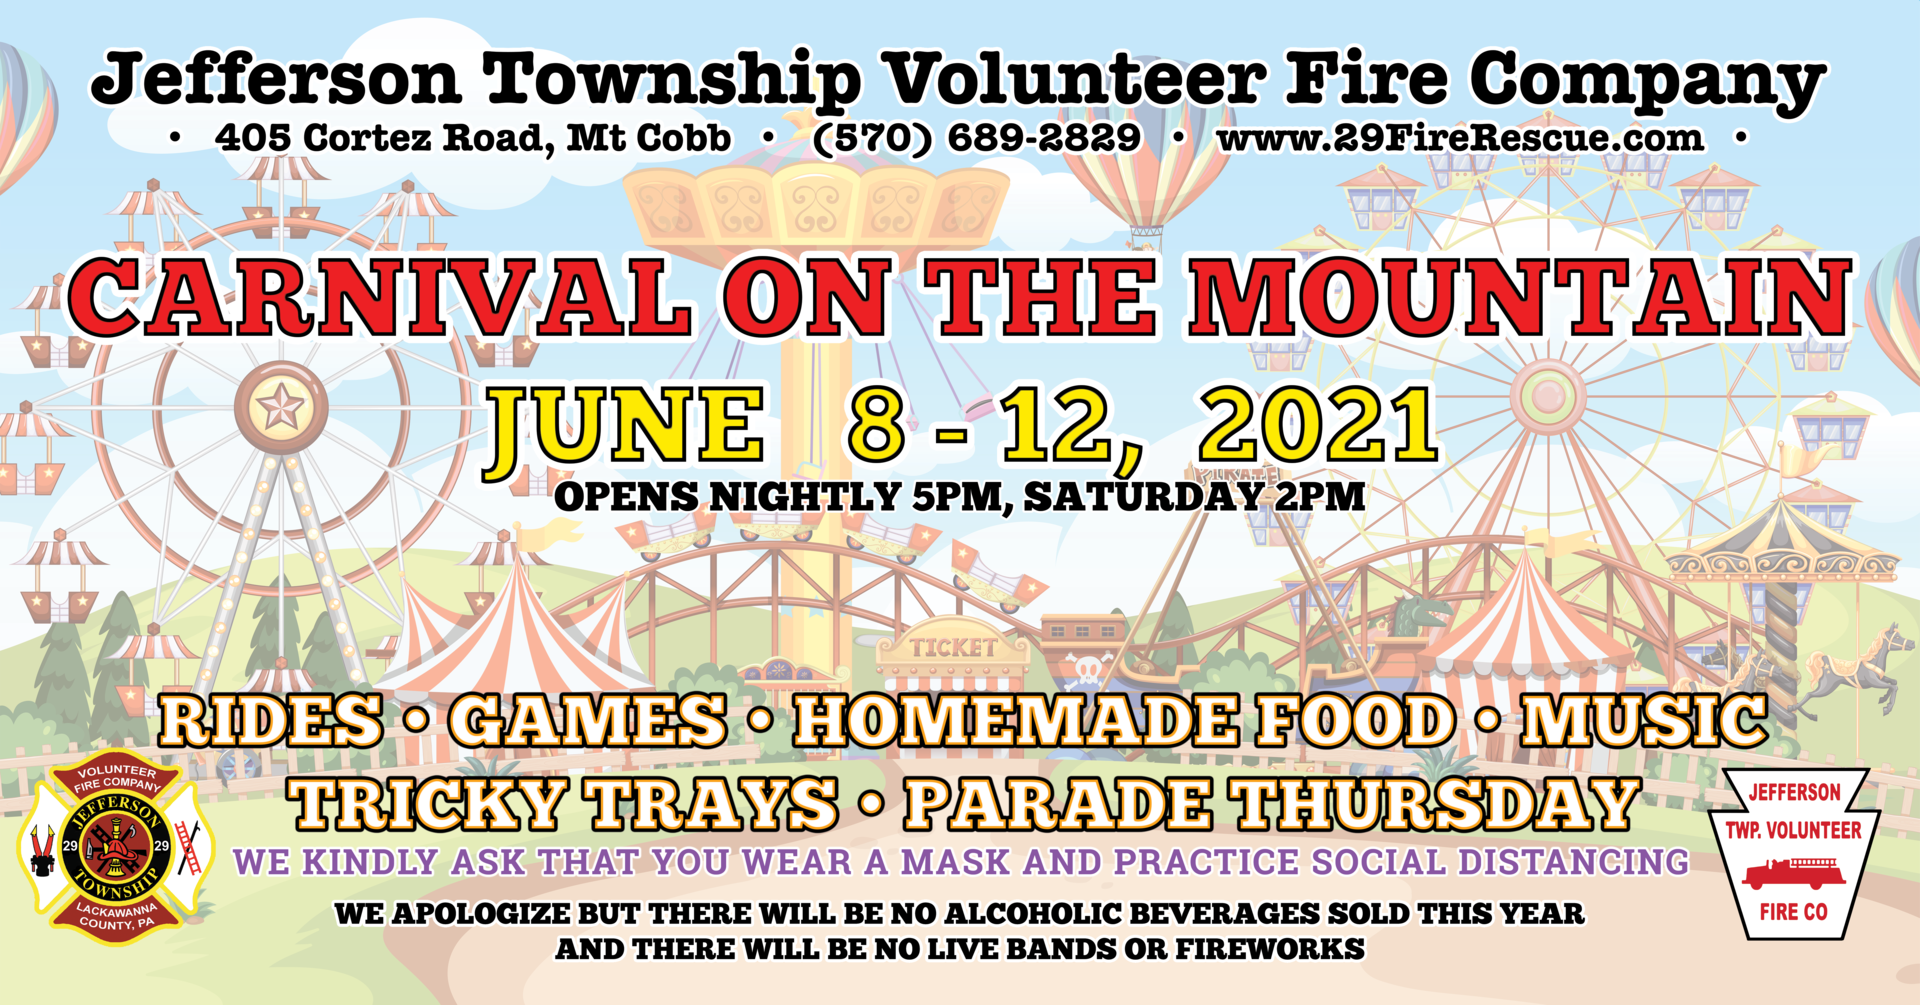 Carnival on the Mountain at the Jefferson Township Volunteer Fire Company